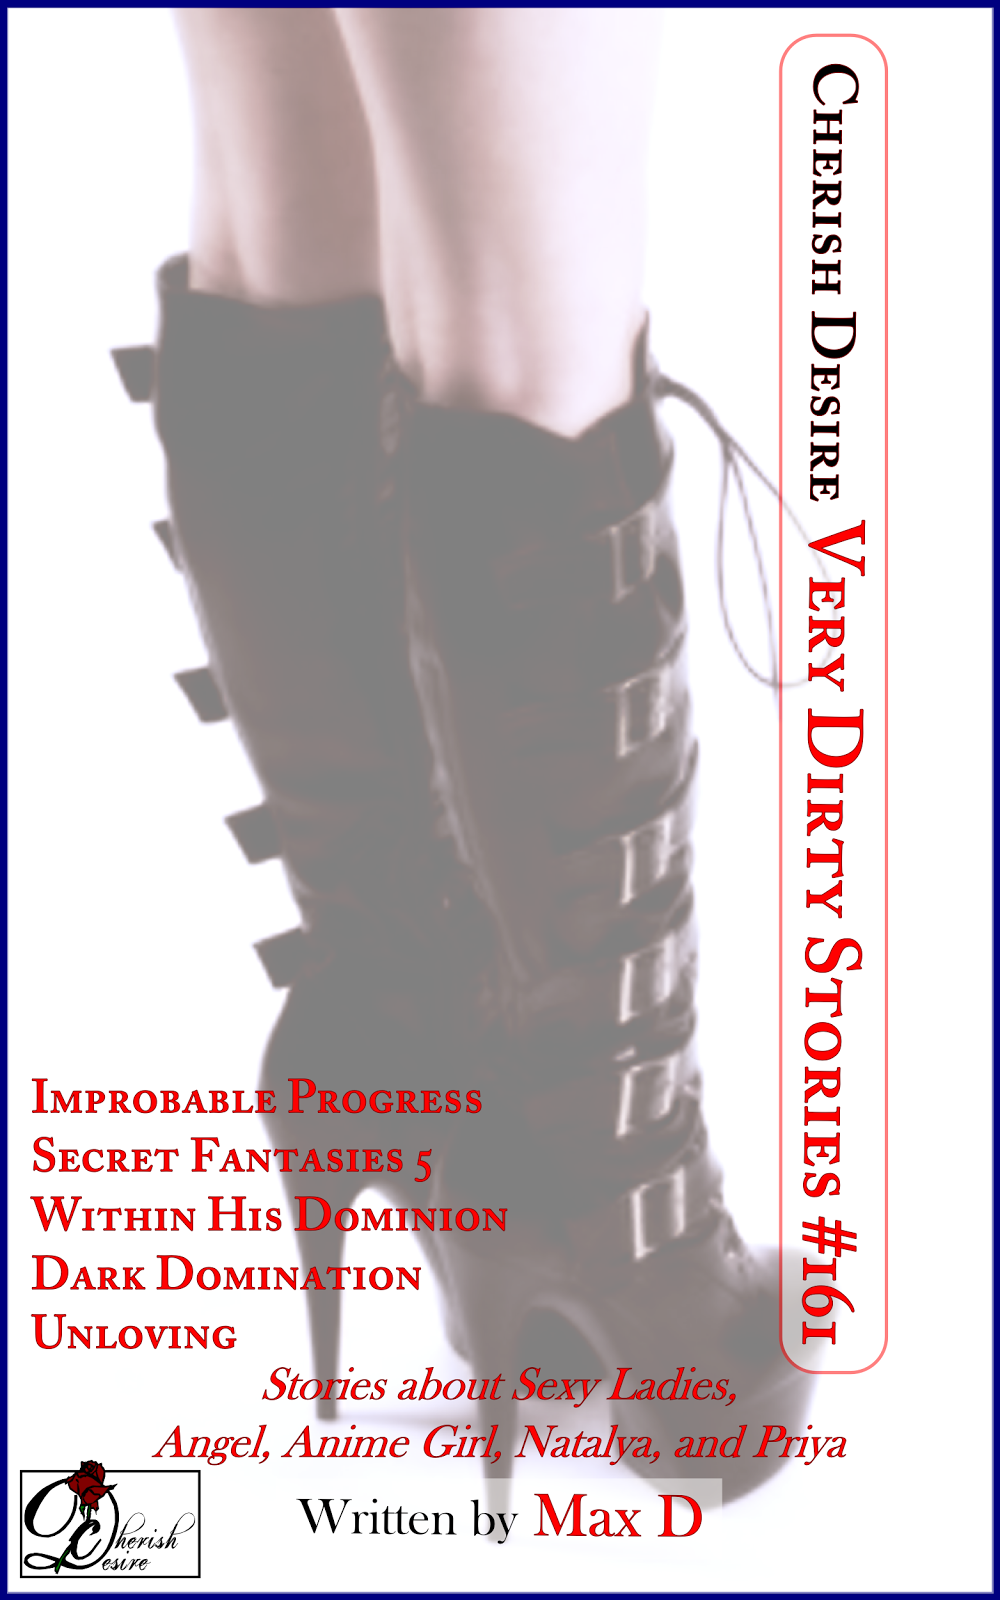 Cherish Desire: Very Dirty Stories #161, Max D, erotica